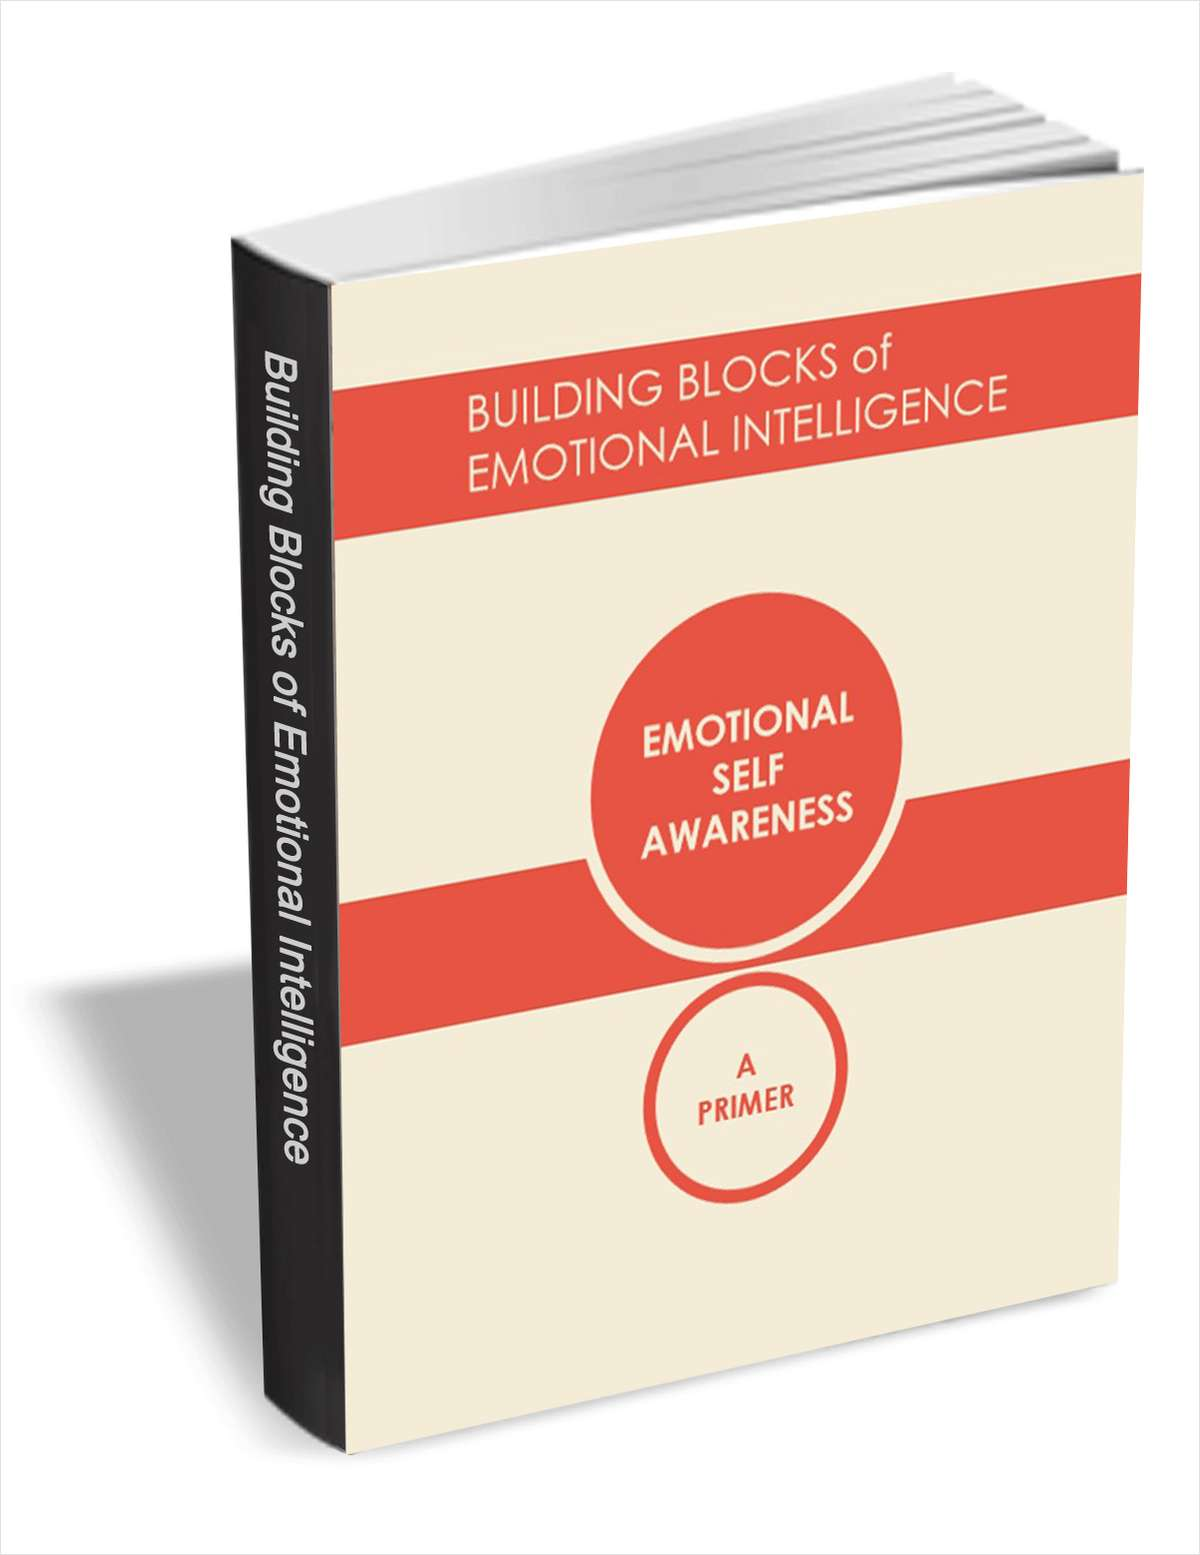 Building Blocks of Emotional Intelligence - Emotional Self Awareness